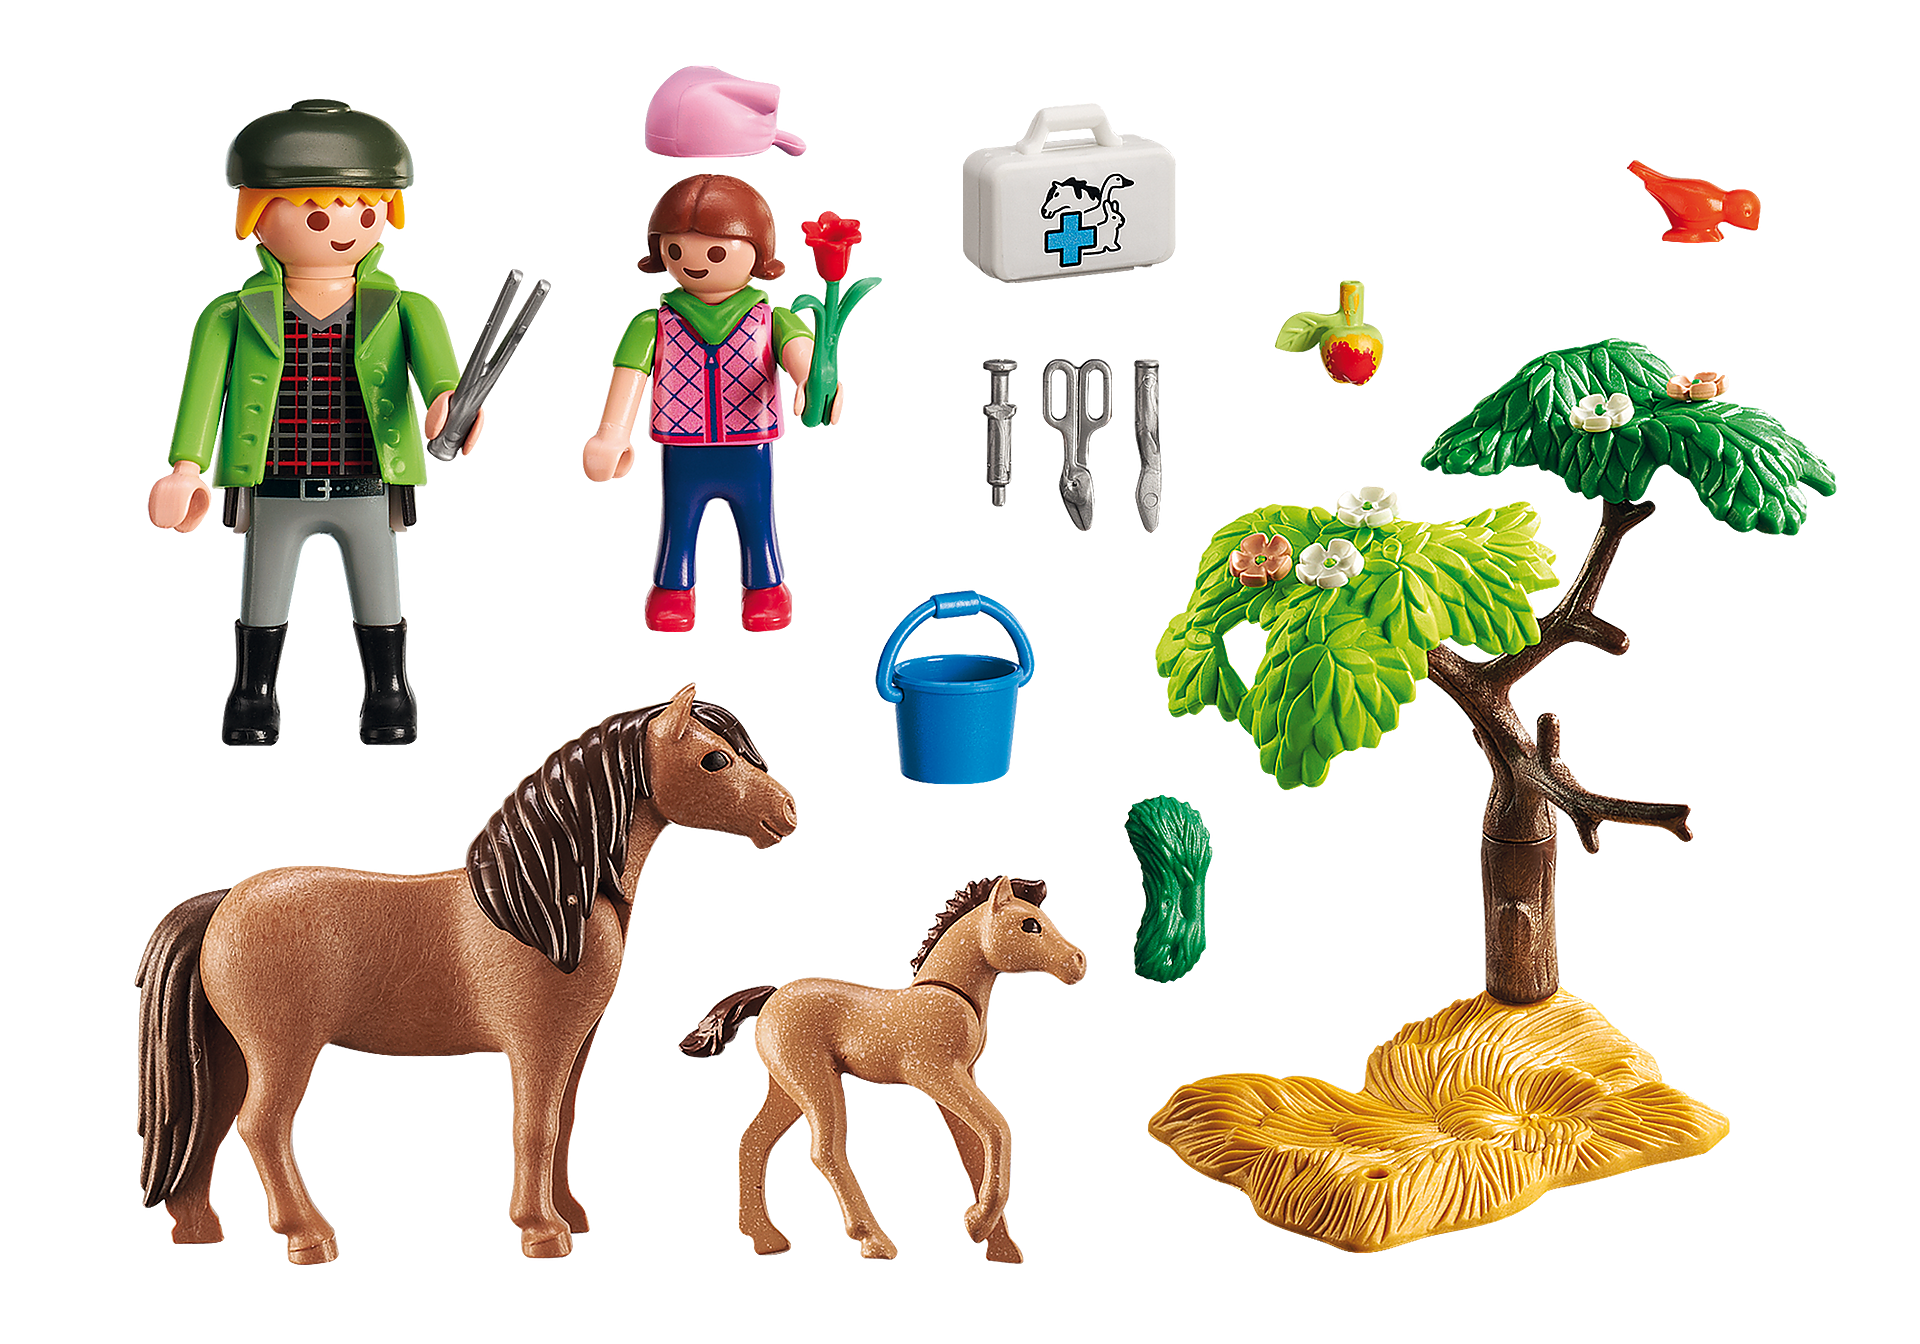 http://media.playmobil.com/i/playmobil/6949_product_box_back/Κτηνίατρος με πόνυ και πουλάρι